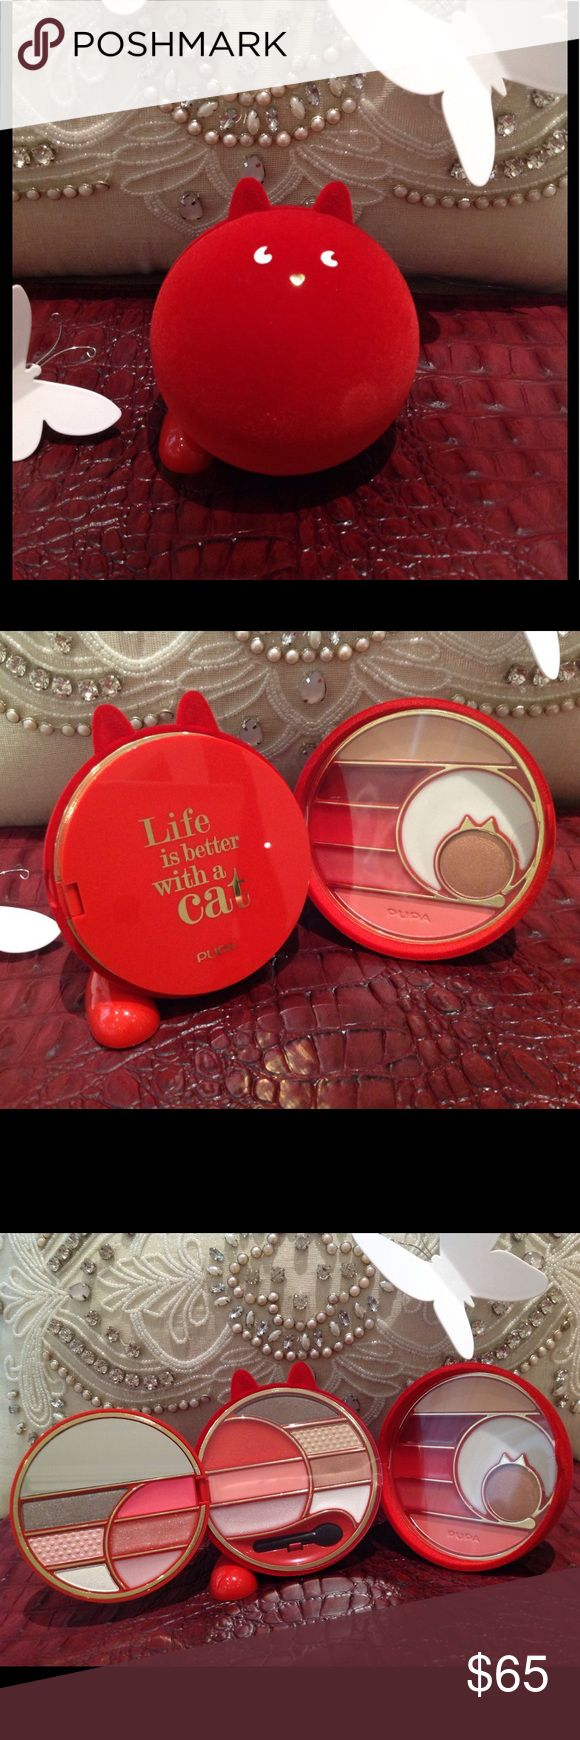 """✨Pupa Red """"Life is Better With a Cat"""" Make Up Kit✨ ✨NIB Cat Lover Pupa Red Velvet """"Life is Better With a Cat"""" Make Up Kit. I want one in every color! This is an Italian make up brand, from the 2016 collection. Velvet outer shell covering, opens up to three sections of assorted colors for lip, cheek, eyes, and one block of concealer. Half moon mirror and one eyeshadow applicator. Must have for any make up lover/collectors. All plastic protective cover still in place. About 3.5"""" tall and 3""""…"""